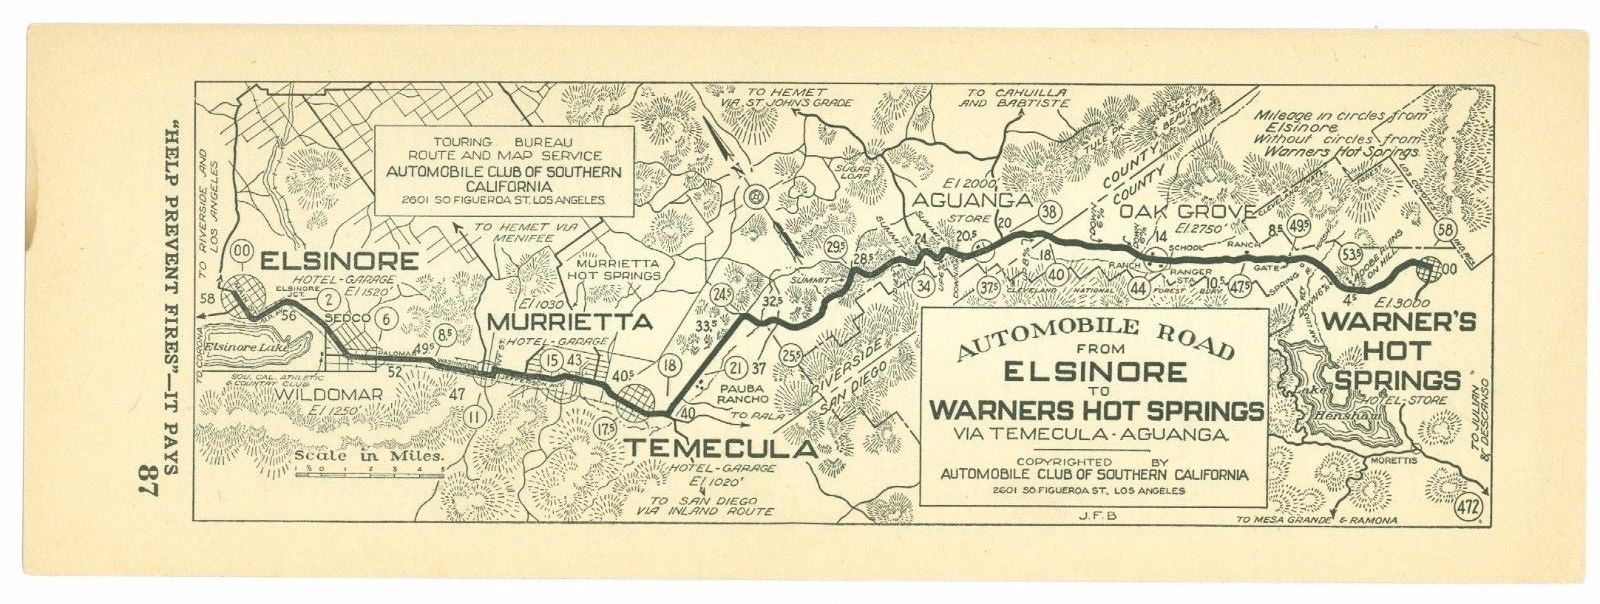 1920s Elsinore to Warner Hot Springs, Cal. AAA Automobile Club of Southern Calif